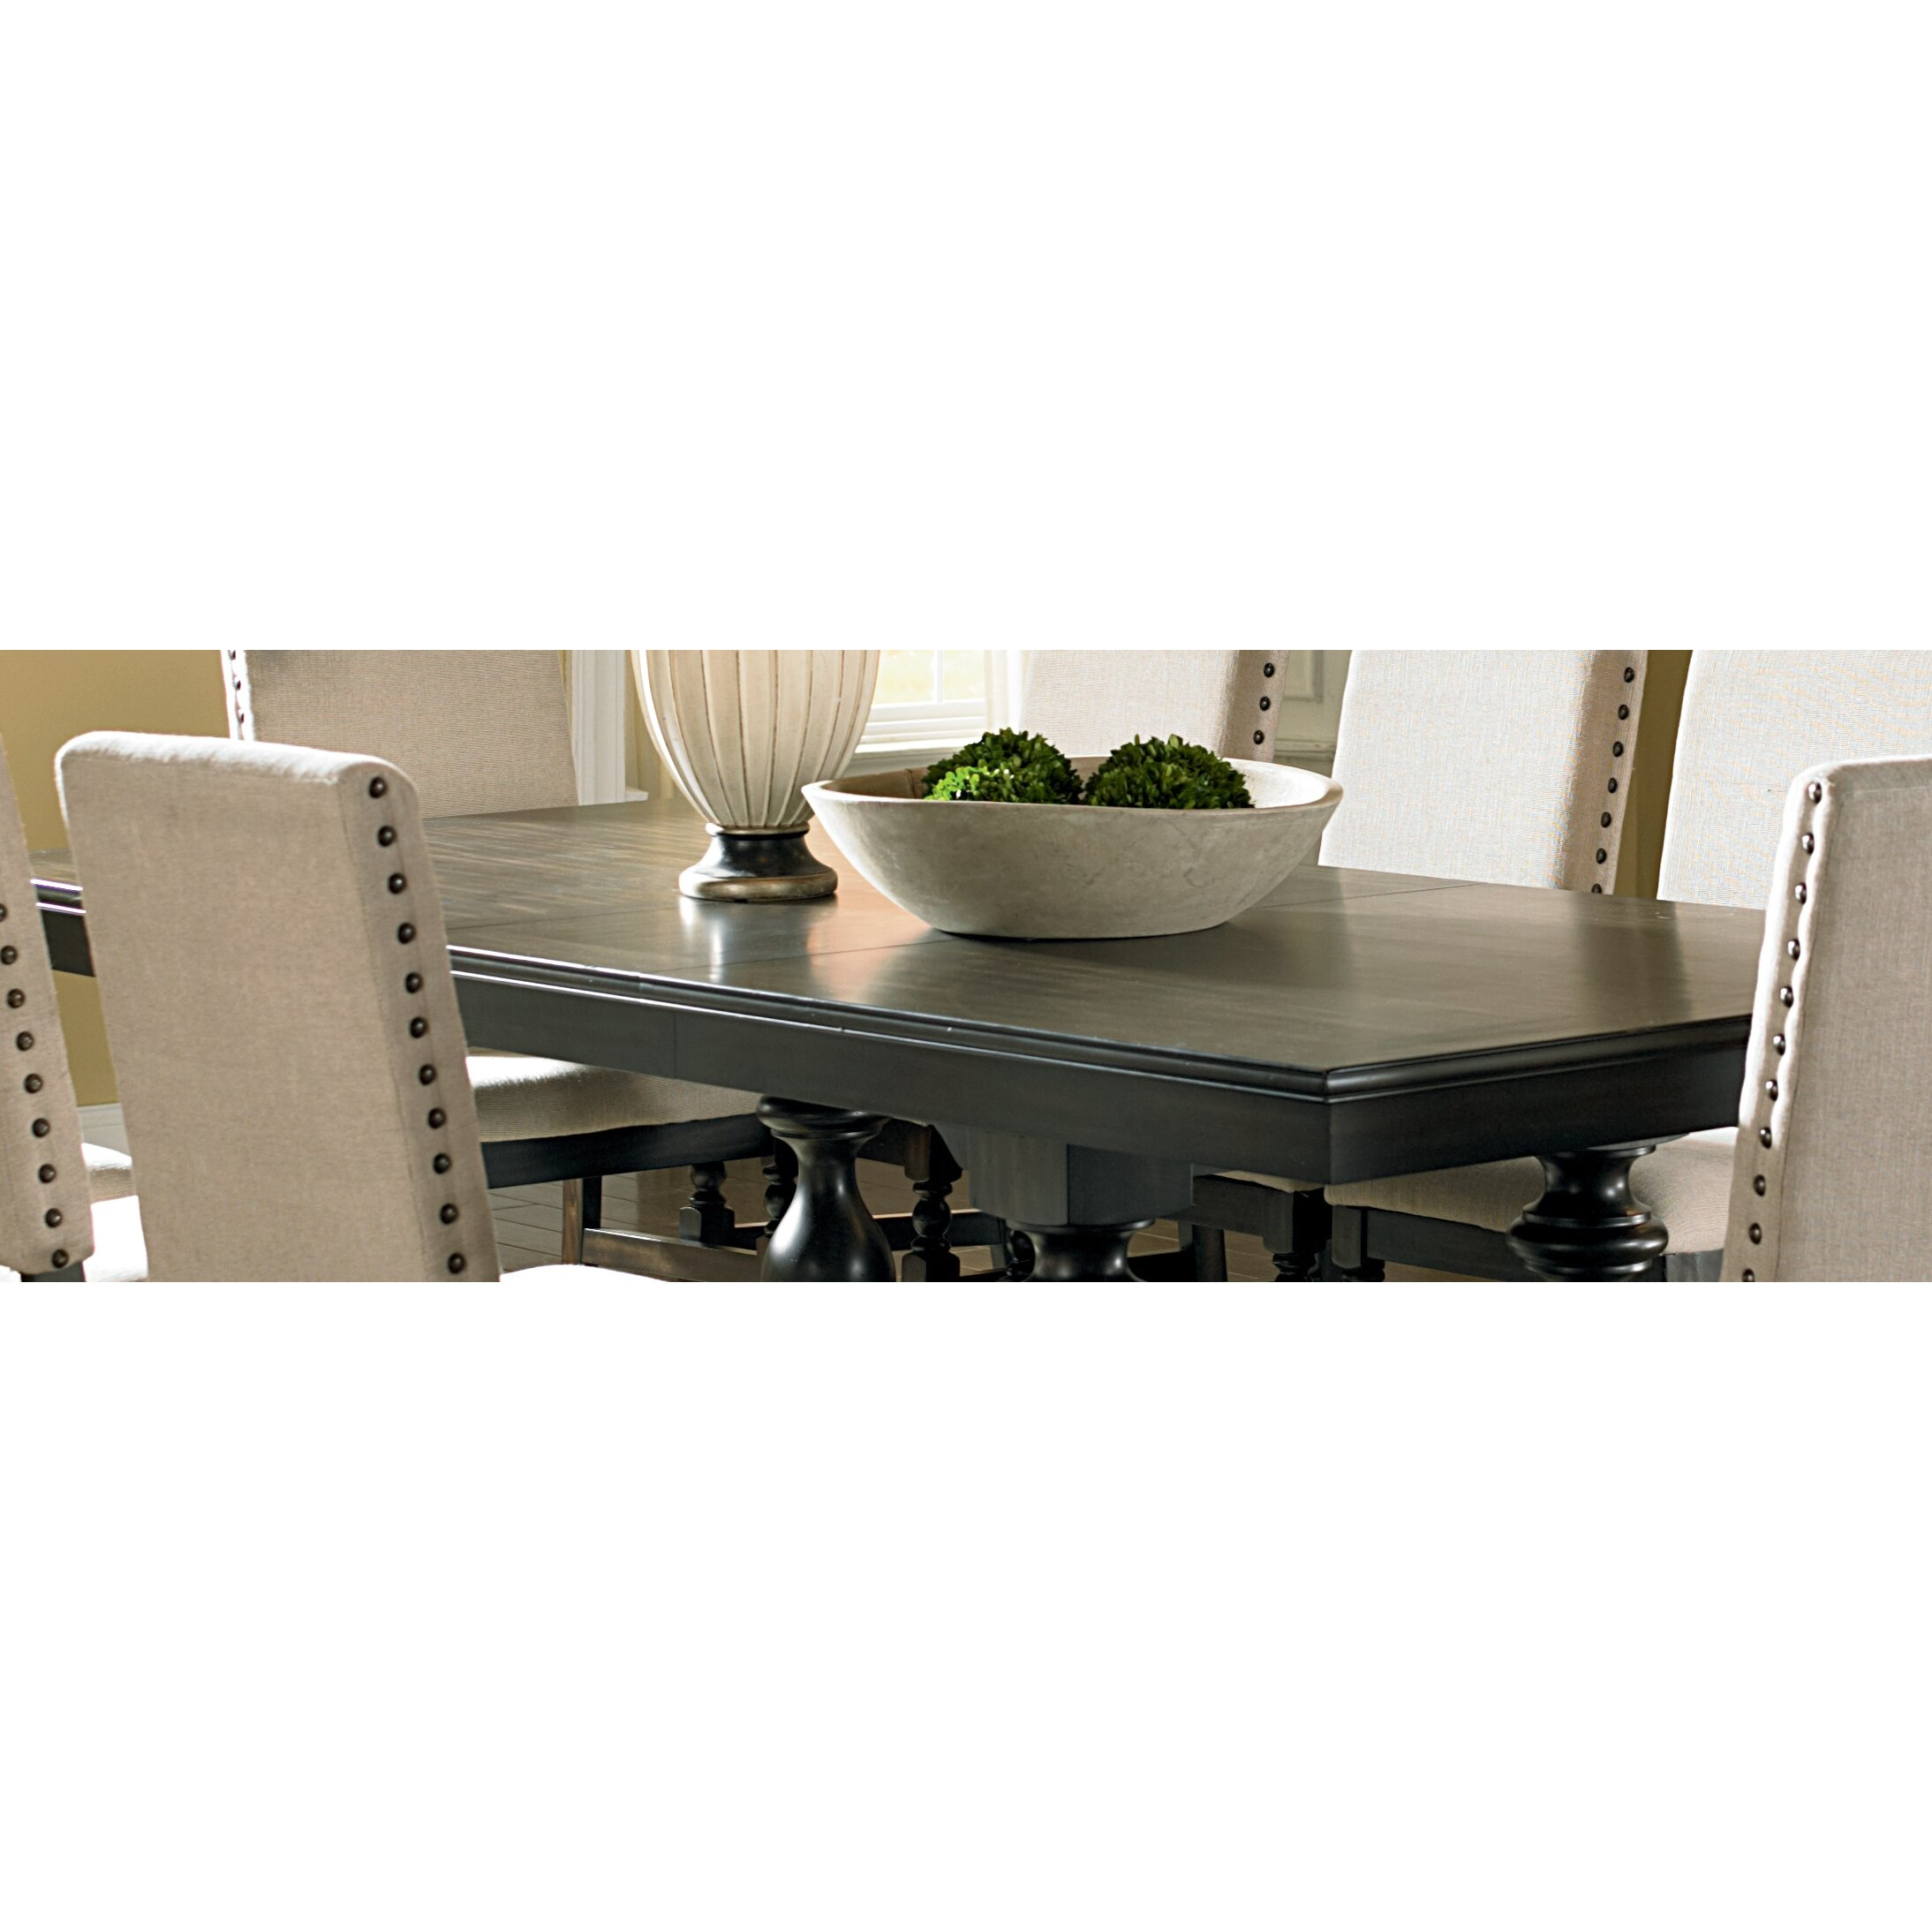 Darby Home Co Extendable Dining Table amp Reviews Wayfair :  from www.wayfair.com size 2188 x 2188 jpeg 256kB